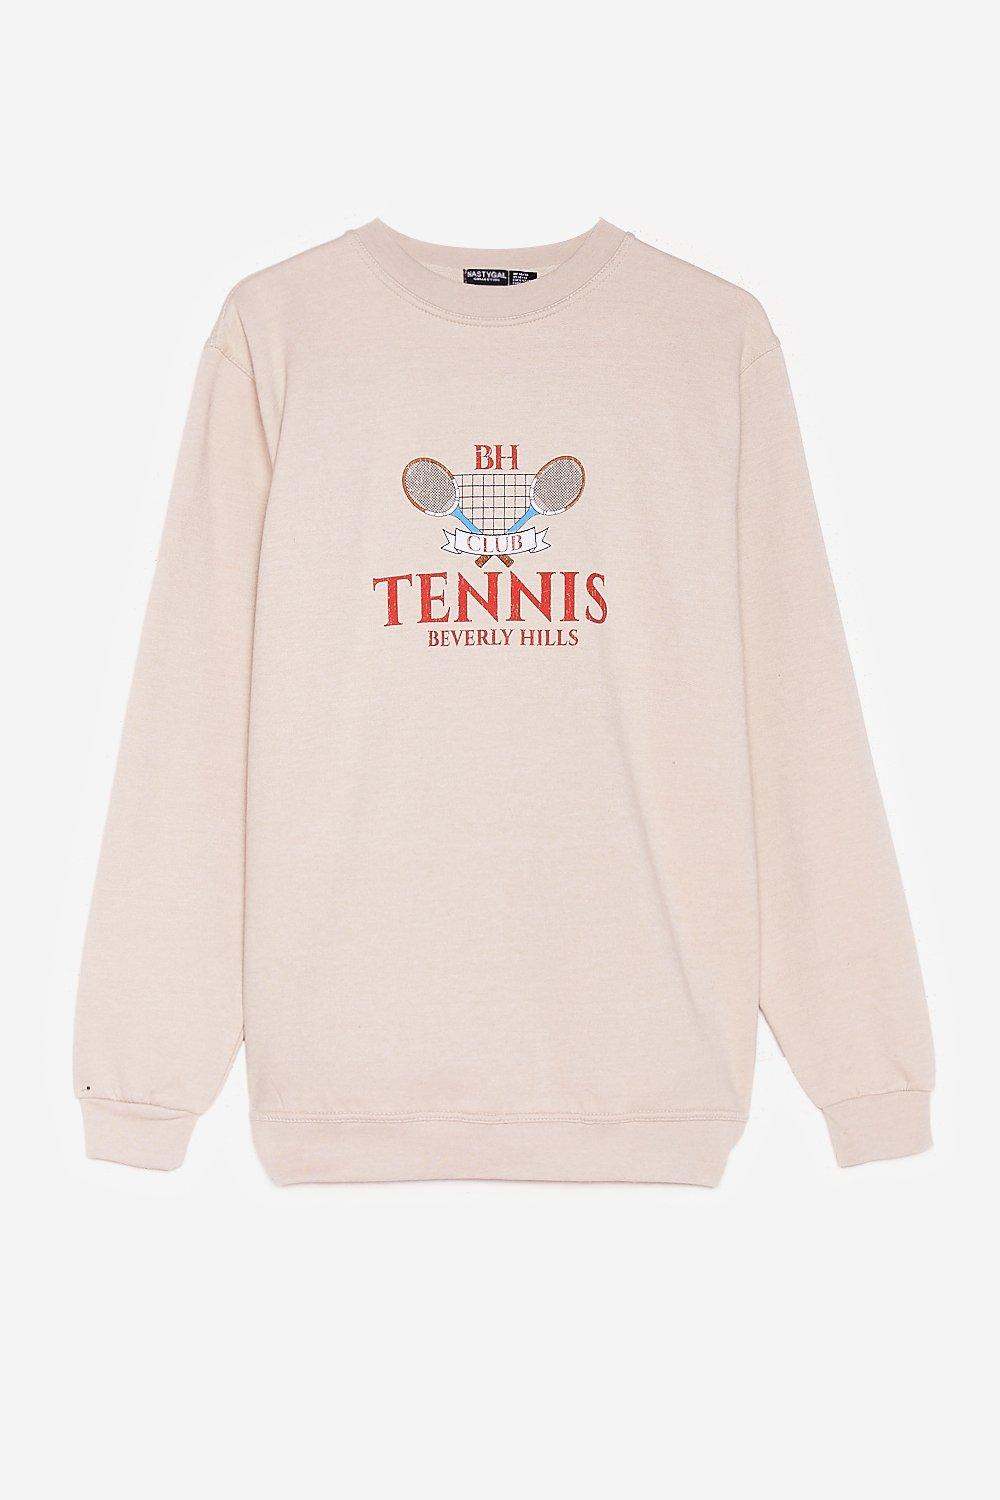 Cause a Racquet Plus Tennis Graphic Sweatshirt 11